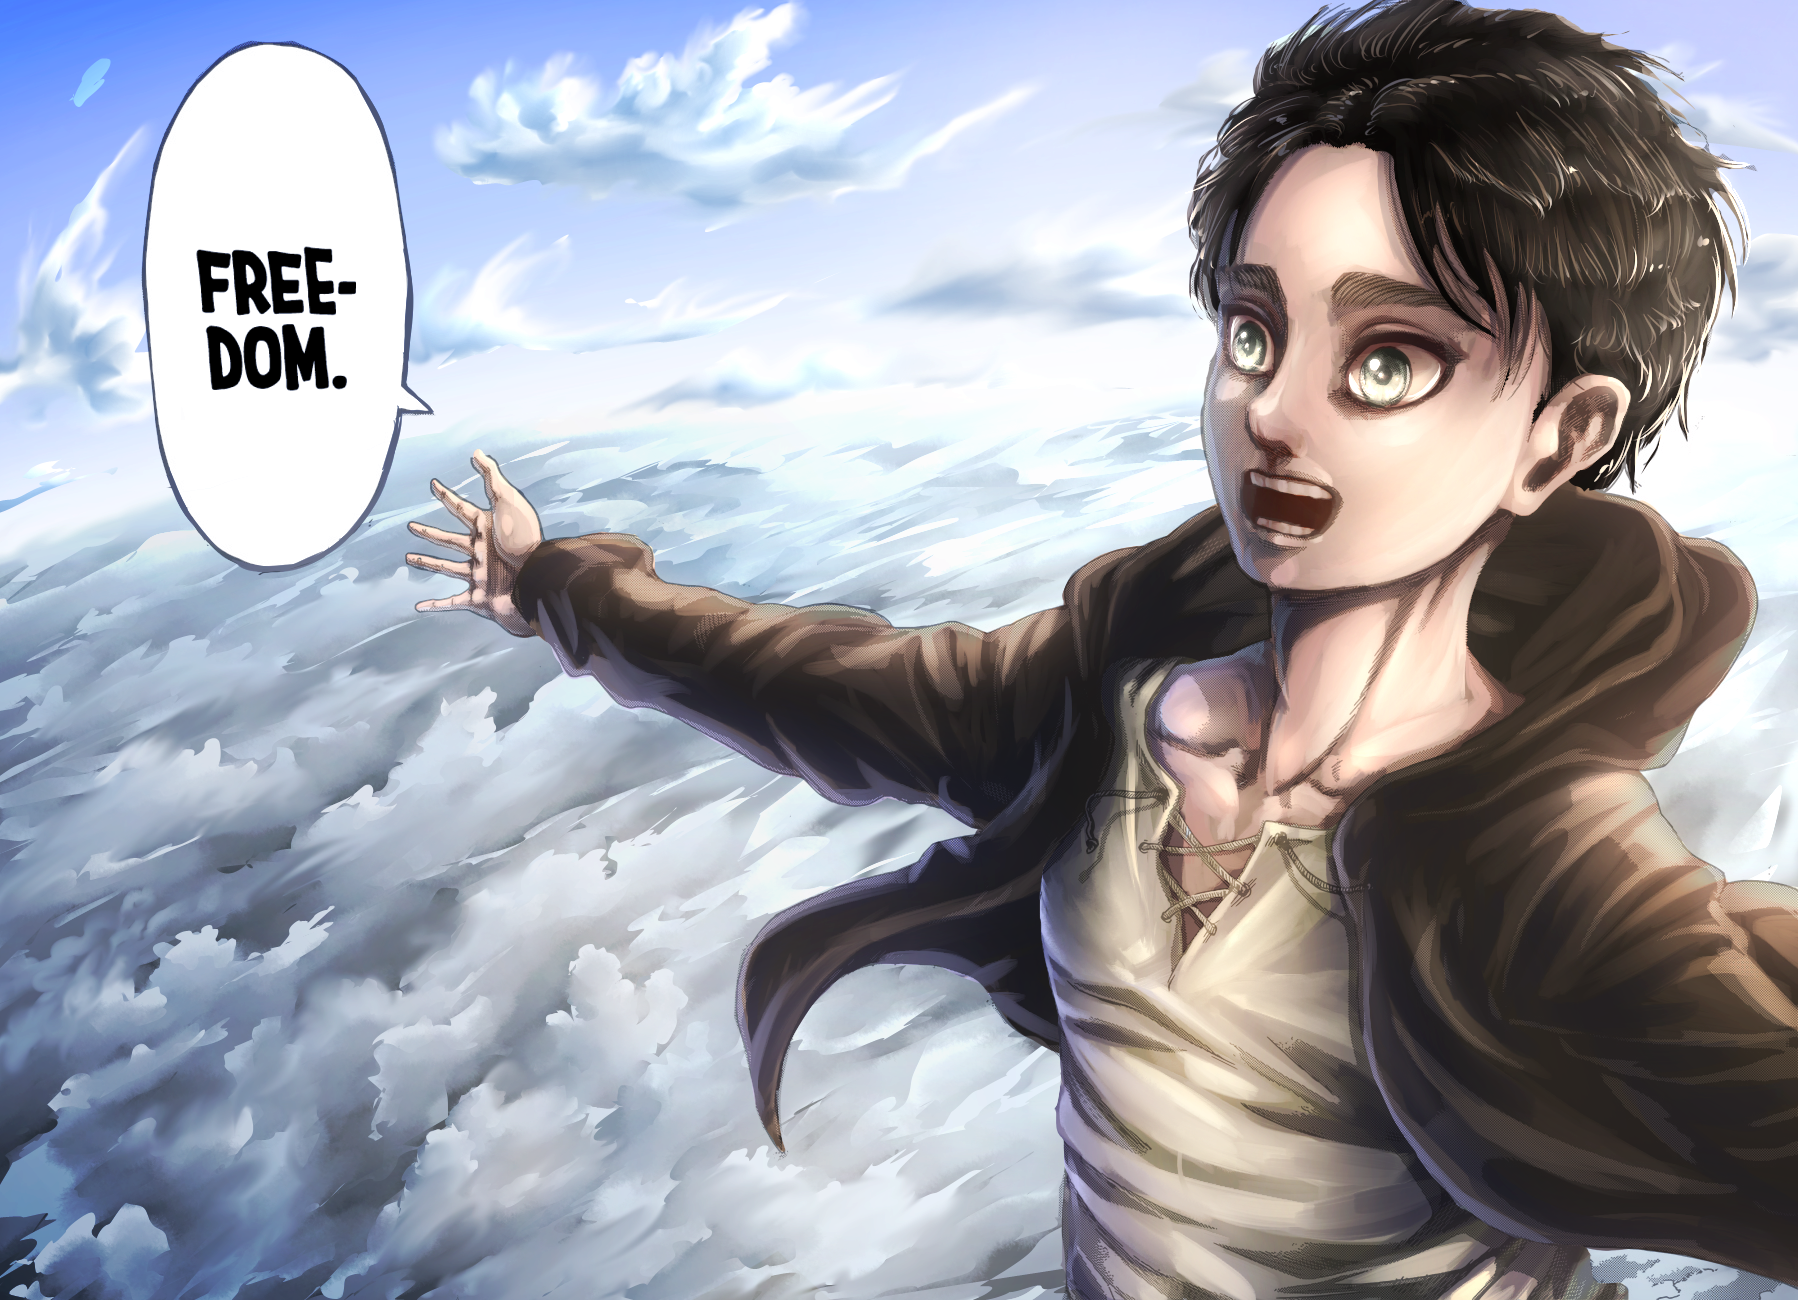 FlameGraphics - Arts! on Twitter in 2020   Attack on titan ...